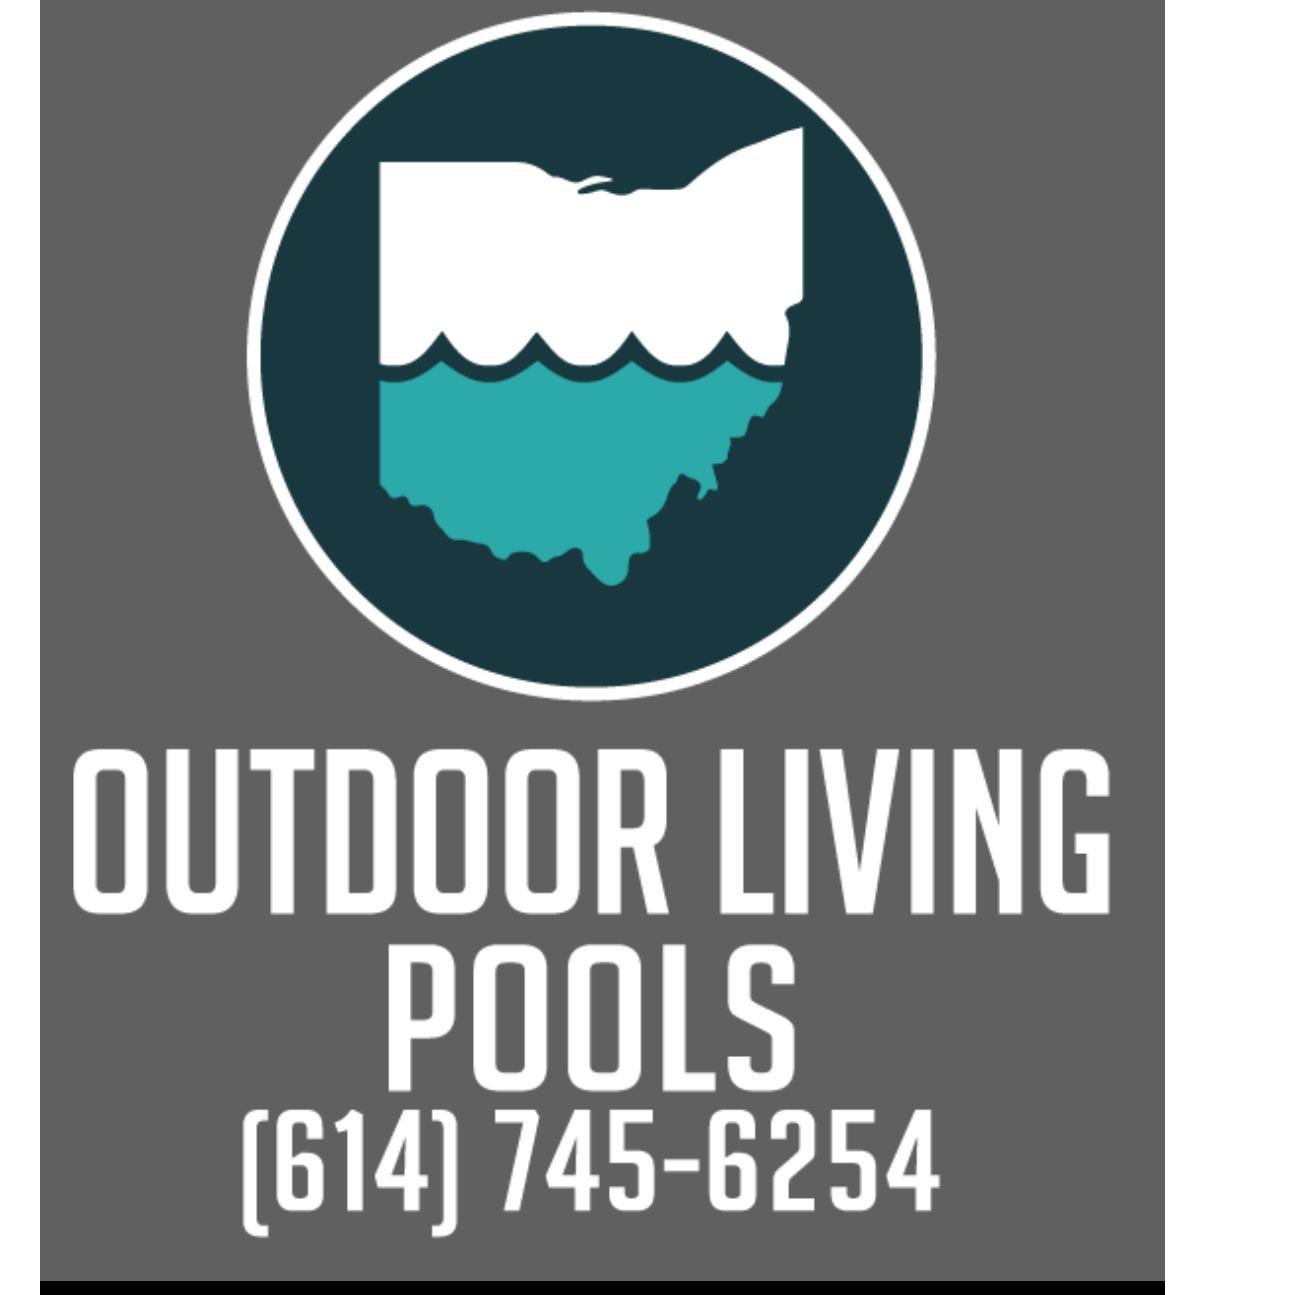 Outdoor Living Pools